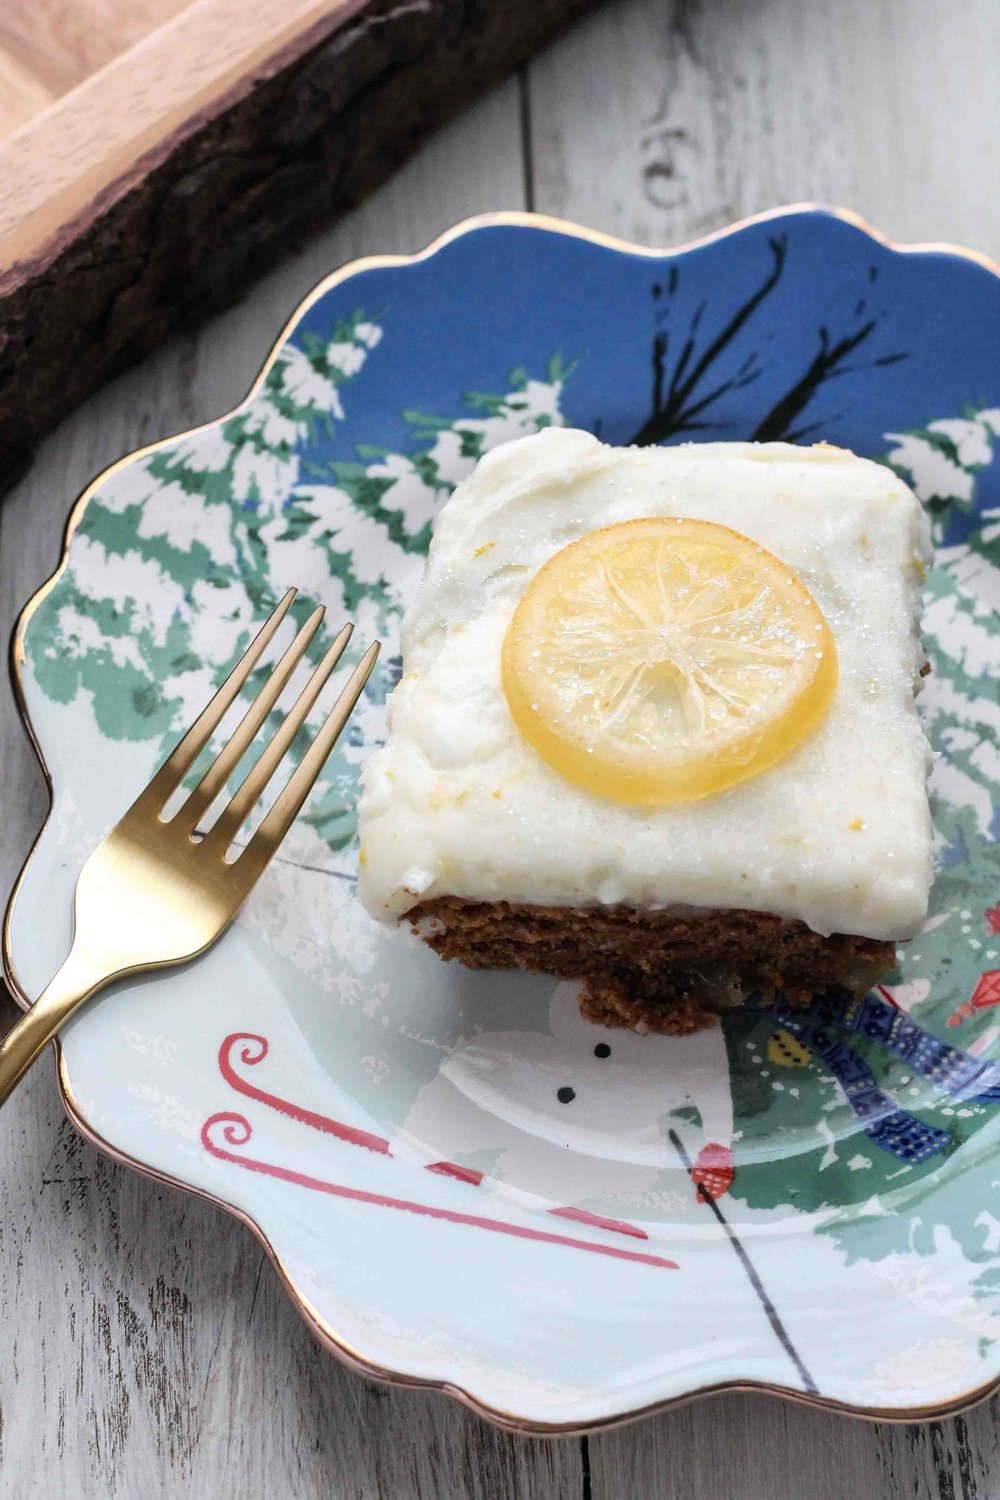 A deeply spicy gingerbread cake studded with candied lemon and crystalized ginger topped with a lemon cream cheese frosting makes is the perfect dessert for the holidays. [www.pedanticfoodie.com]